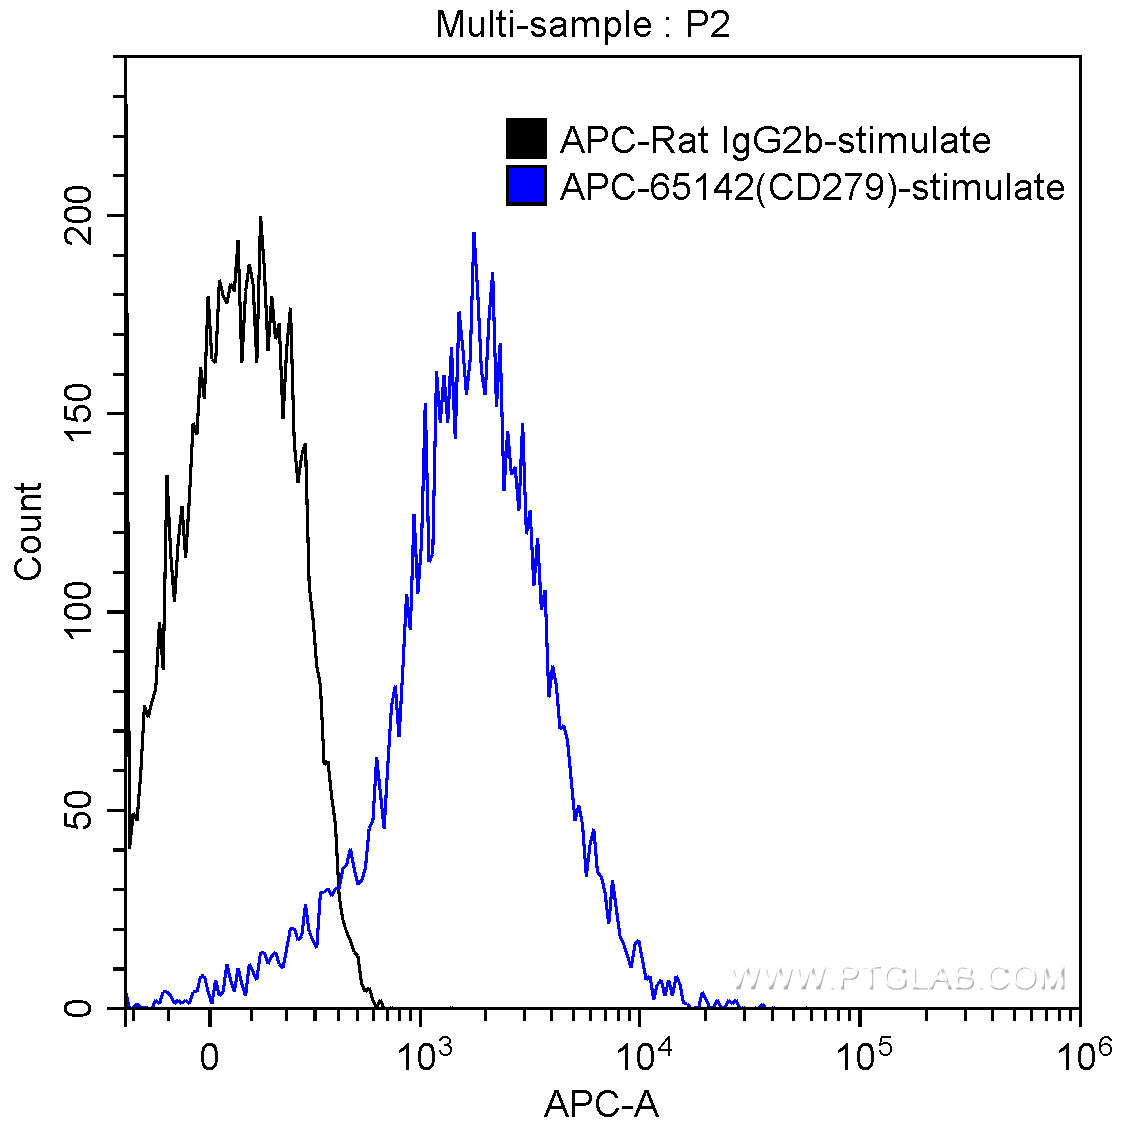 1X10^6 Con-A stimulated BALB/c mouse splenocytes (3 ug/ml Con-A, 3 days) were surface stained with 0.5 ug APC Anti-Mouse CD279 (PD-1) (APC-65142, Clone: RMP1-30) (blue) or isotype control antibody (black). Samples were not fixed.